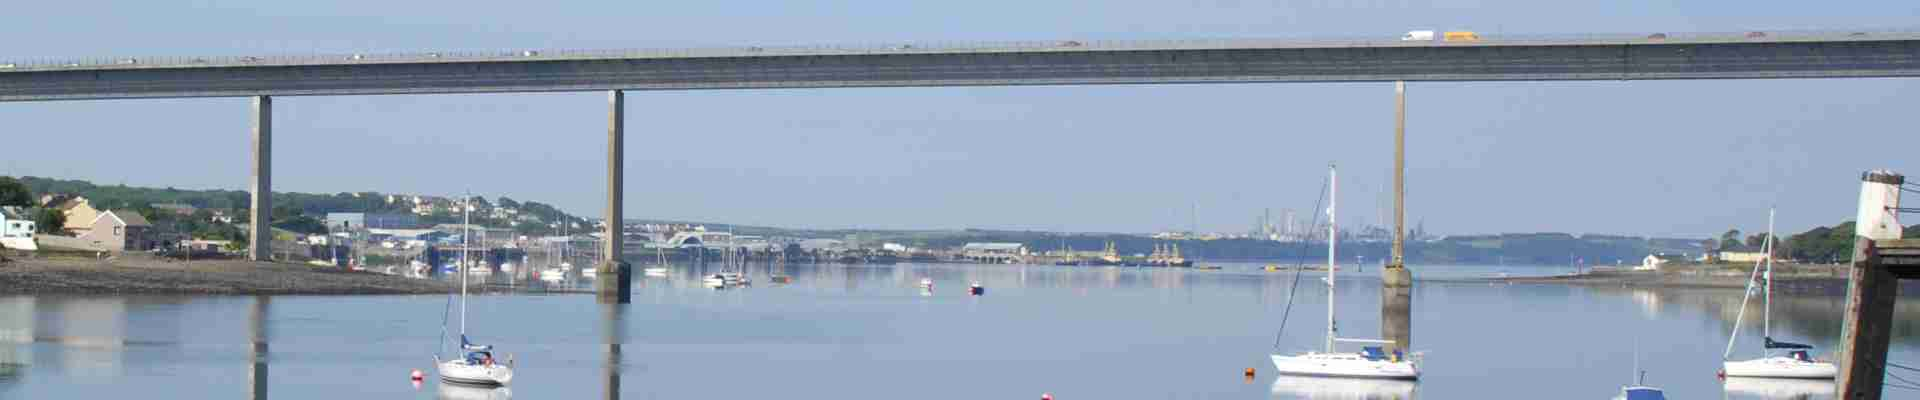 Cleddau Waterway Holiday Cottages